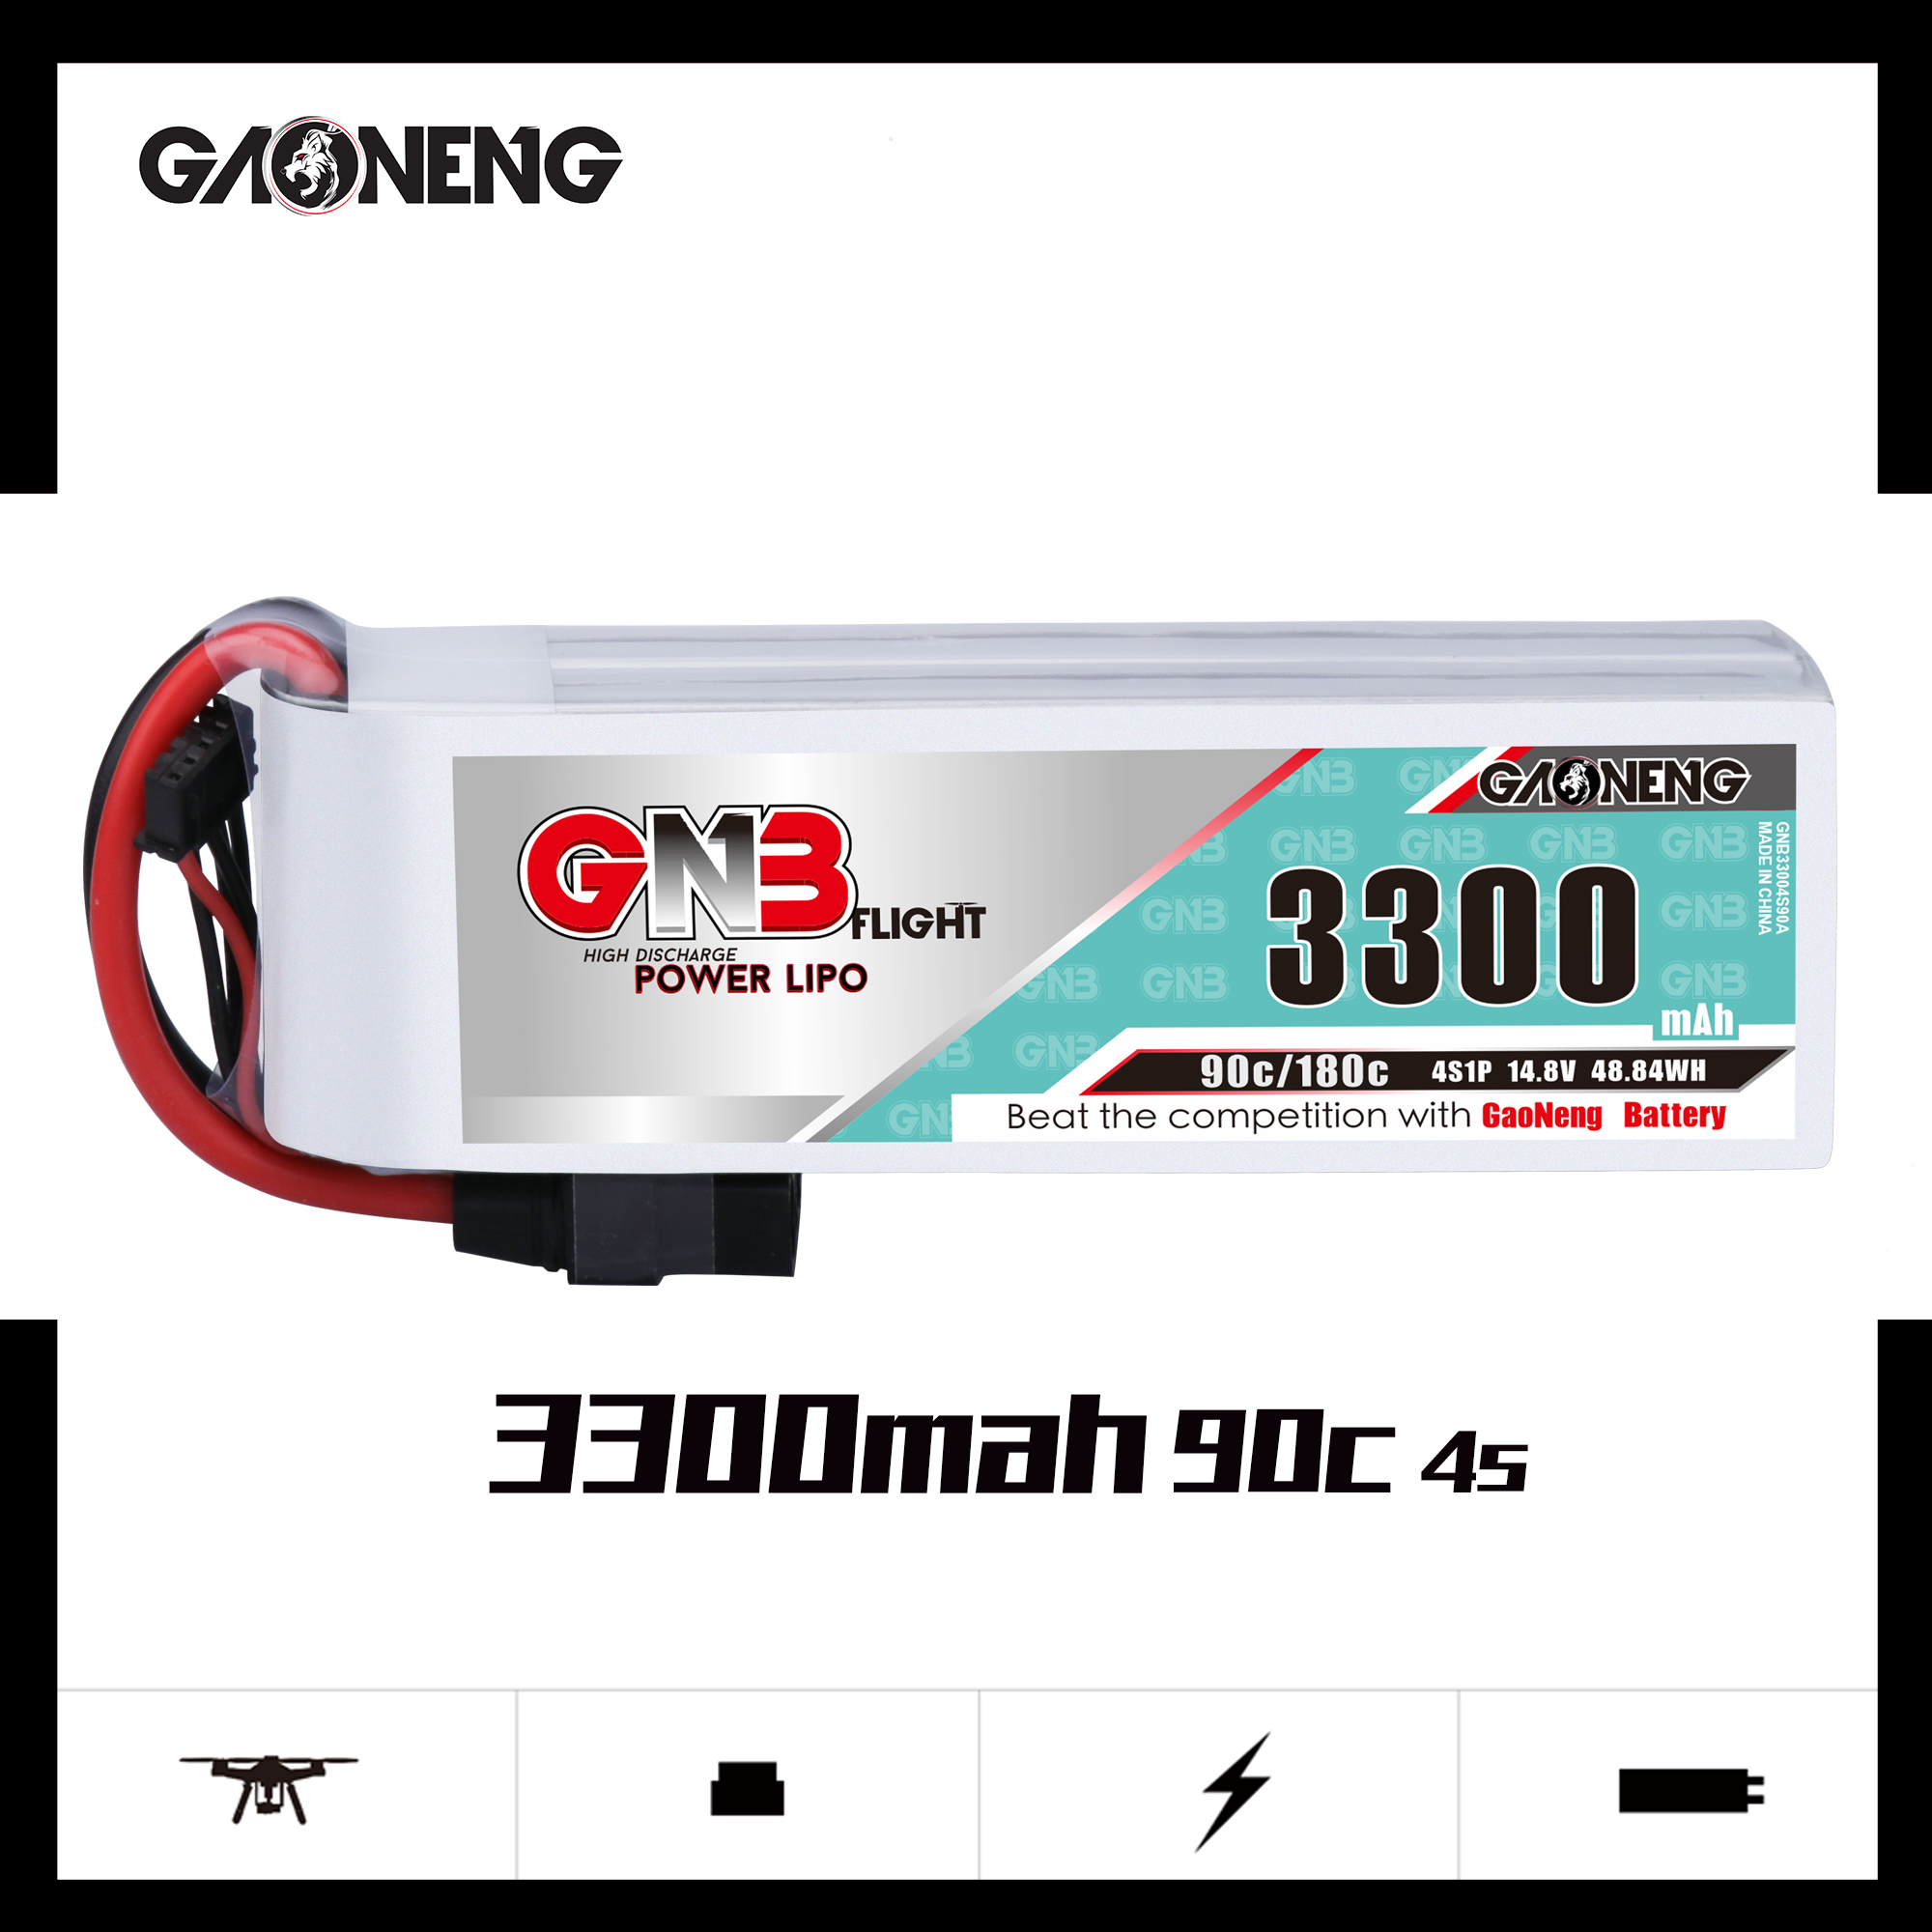 Gaoneng GNB <font><b>3300mAh</b></font> <font><b>4S</b></font> 90C 14.8V <font><b>Lipo</b></font> Battery XT60 XT90 T Plug Fixed Wing Vehicle Model Ship High Performance Lithium Battery image